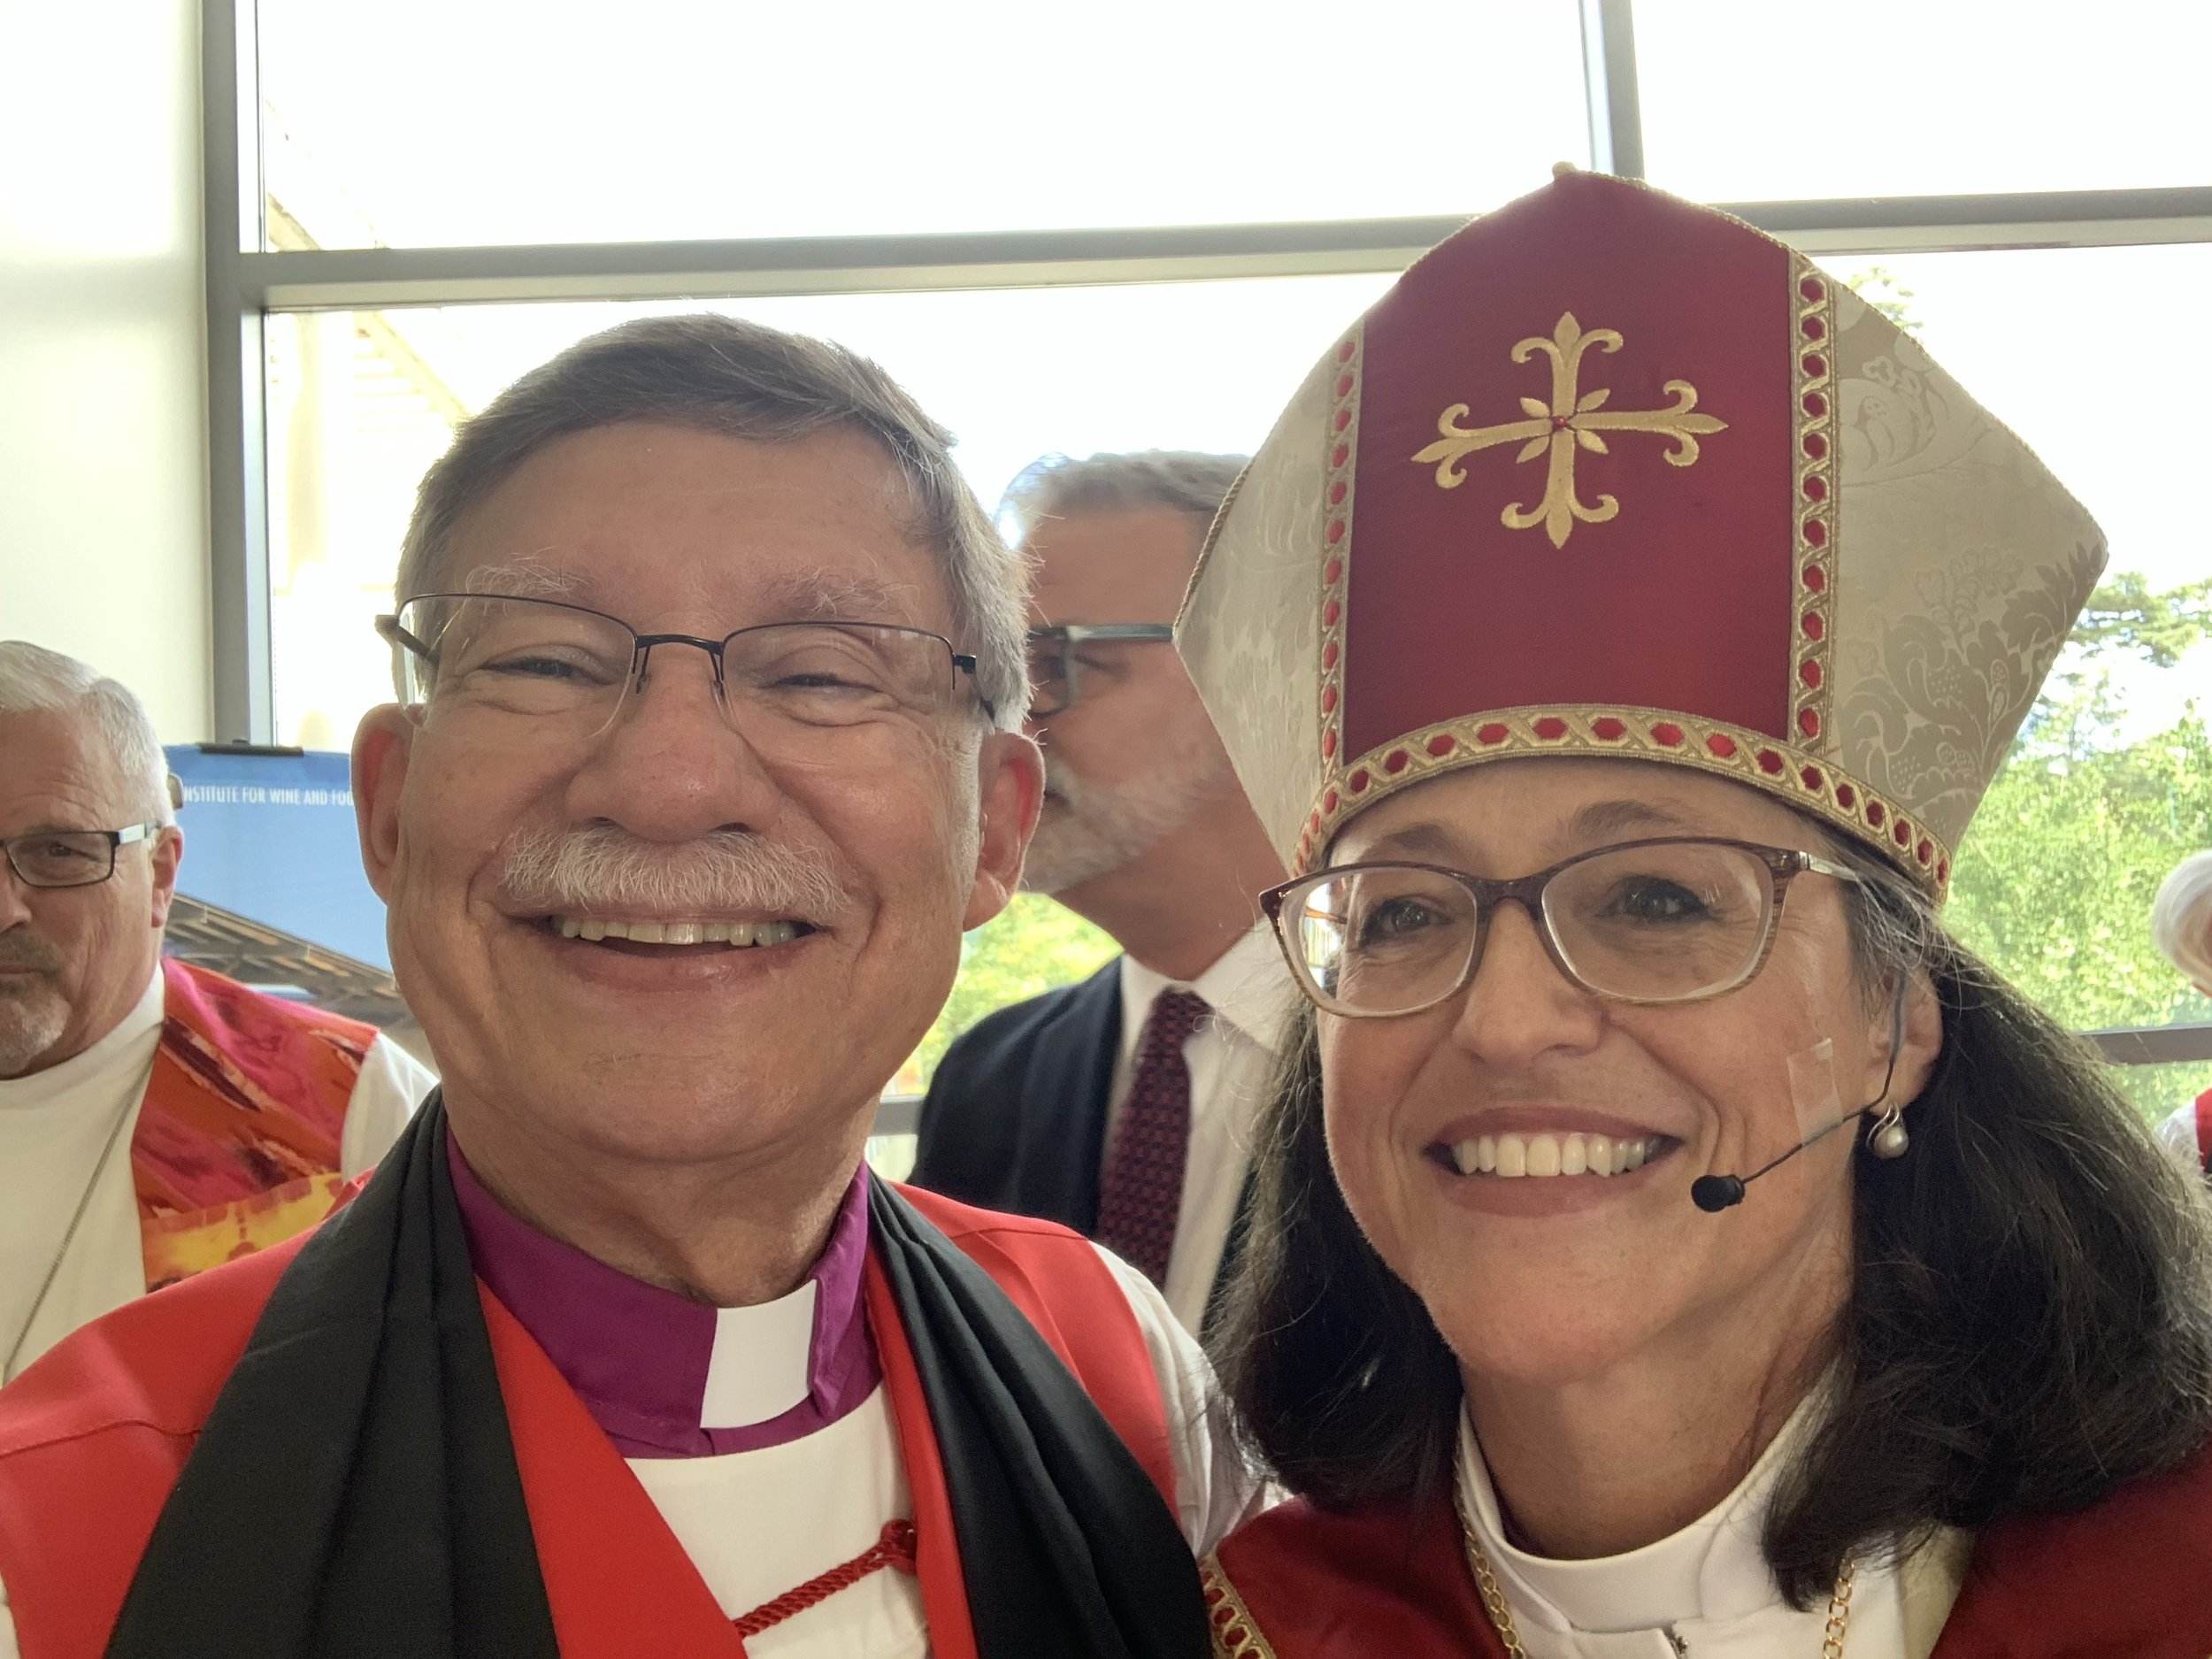 Bishop Ed Little and Bishop Megan Traquair